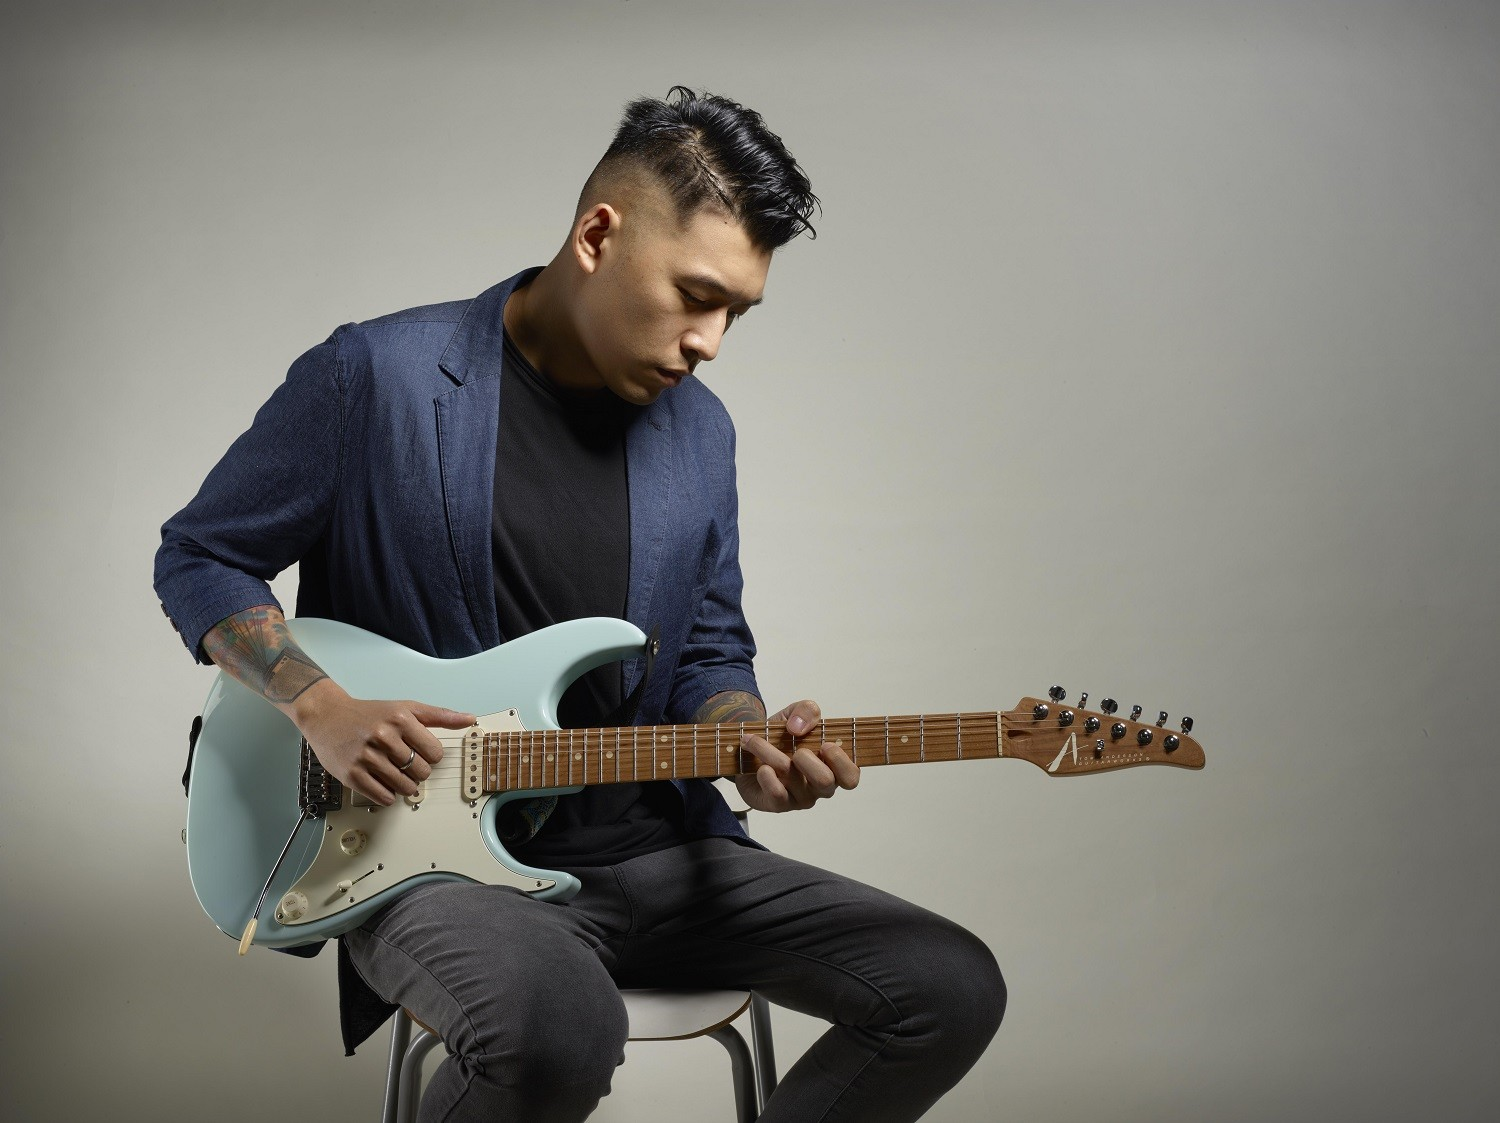 Guitarist Jason Kui Is Ready To Take On The World With Absence Of Words